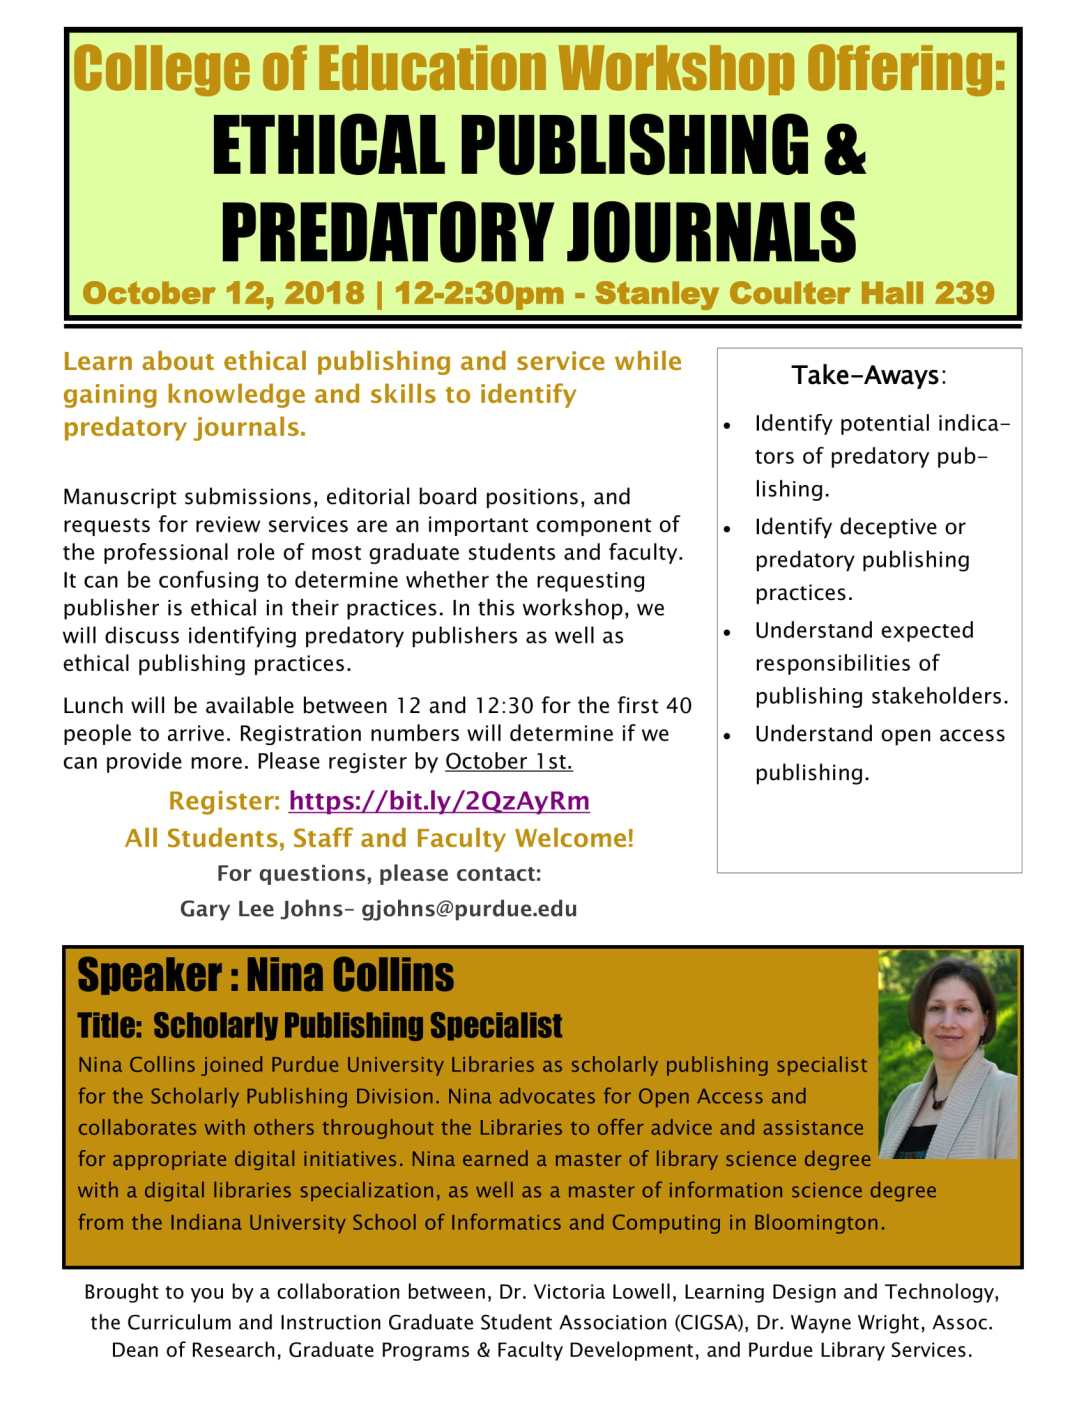 Ethical Publsihing and Predatory Journals Flier3-1